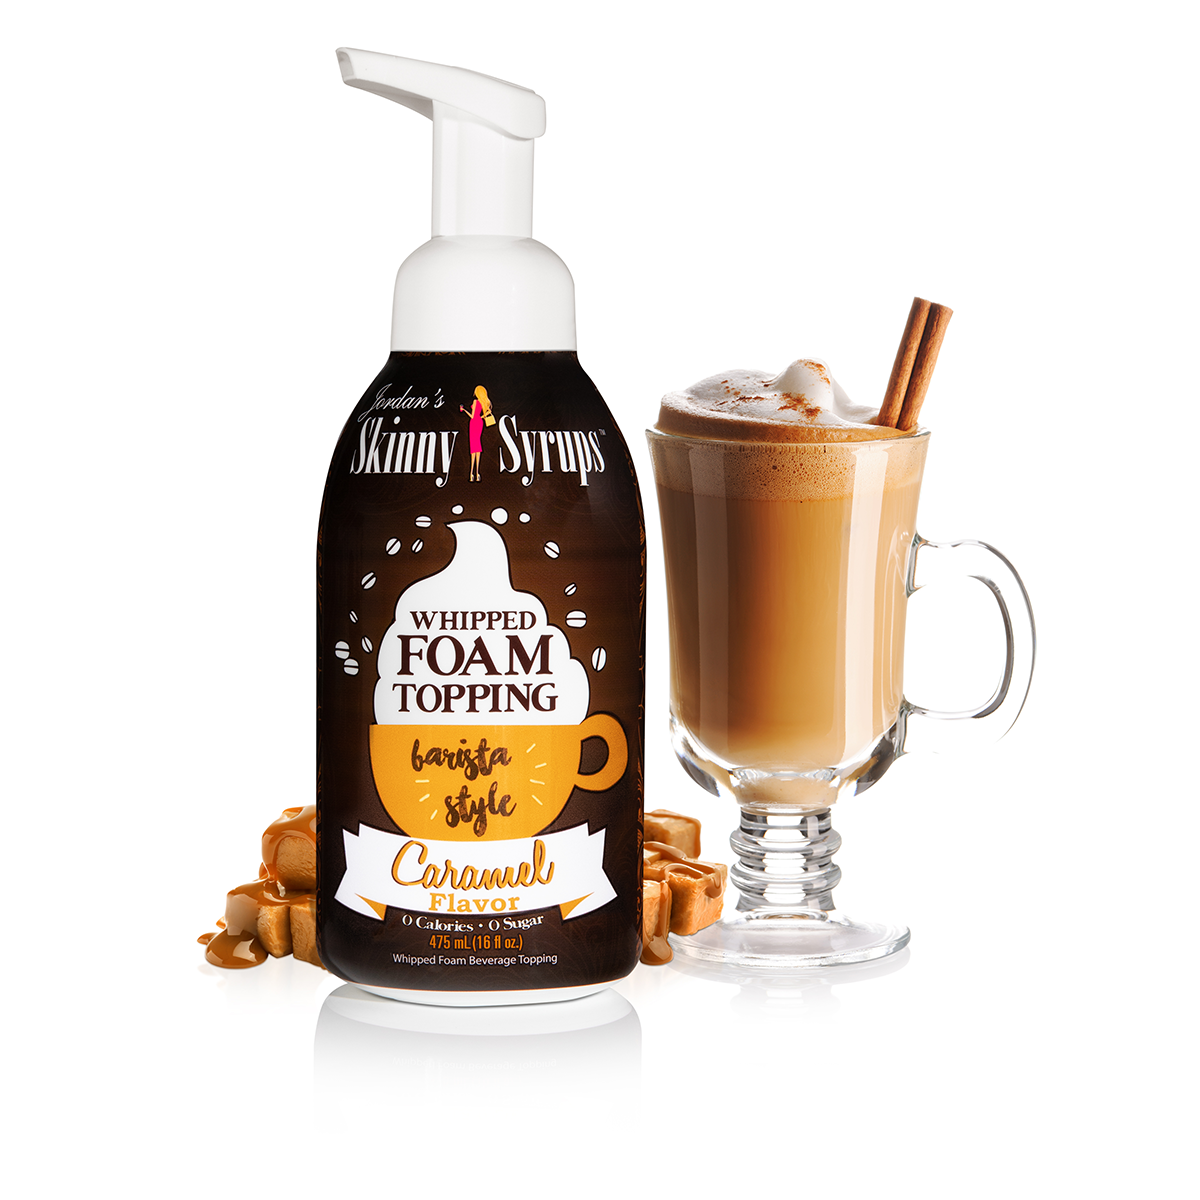 Sugar Free Caramel Whipped Foam Topping - Skinny Mixes